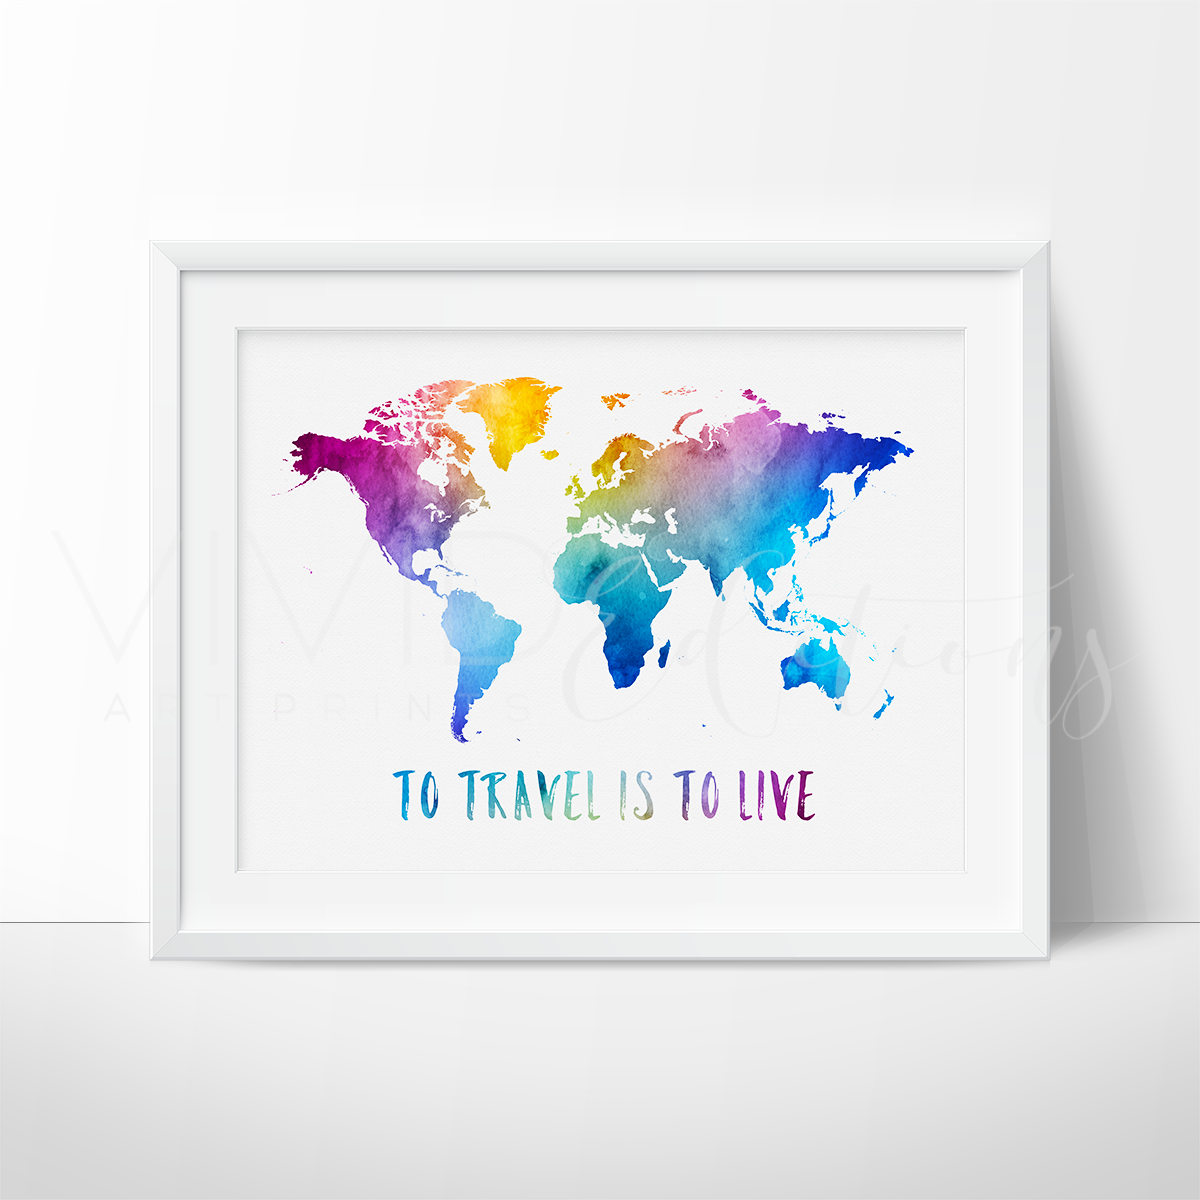 Color art printing anchorage - To Travel Is To Live Travel Quote World Map Watercolor Art Print